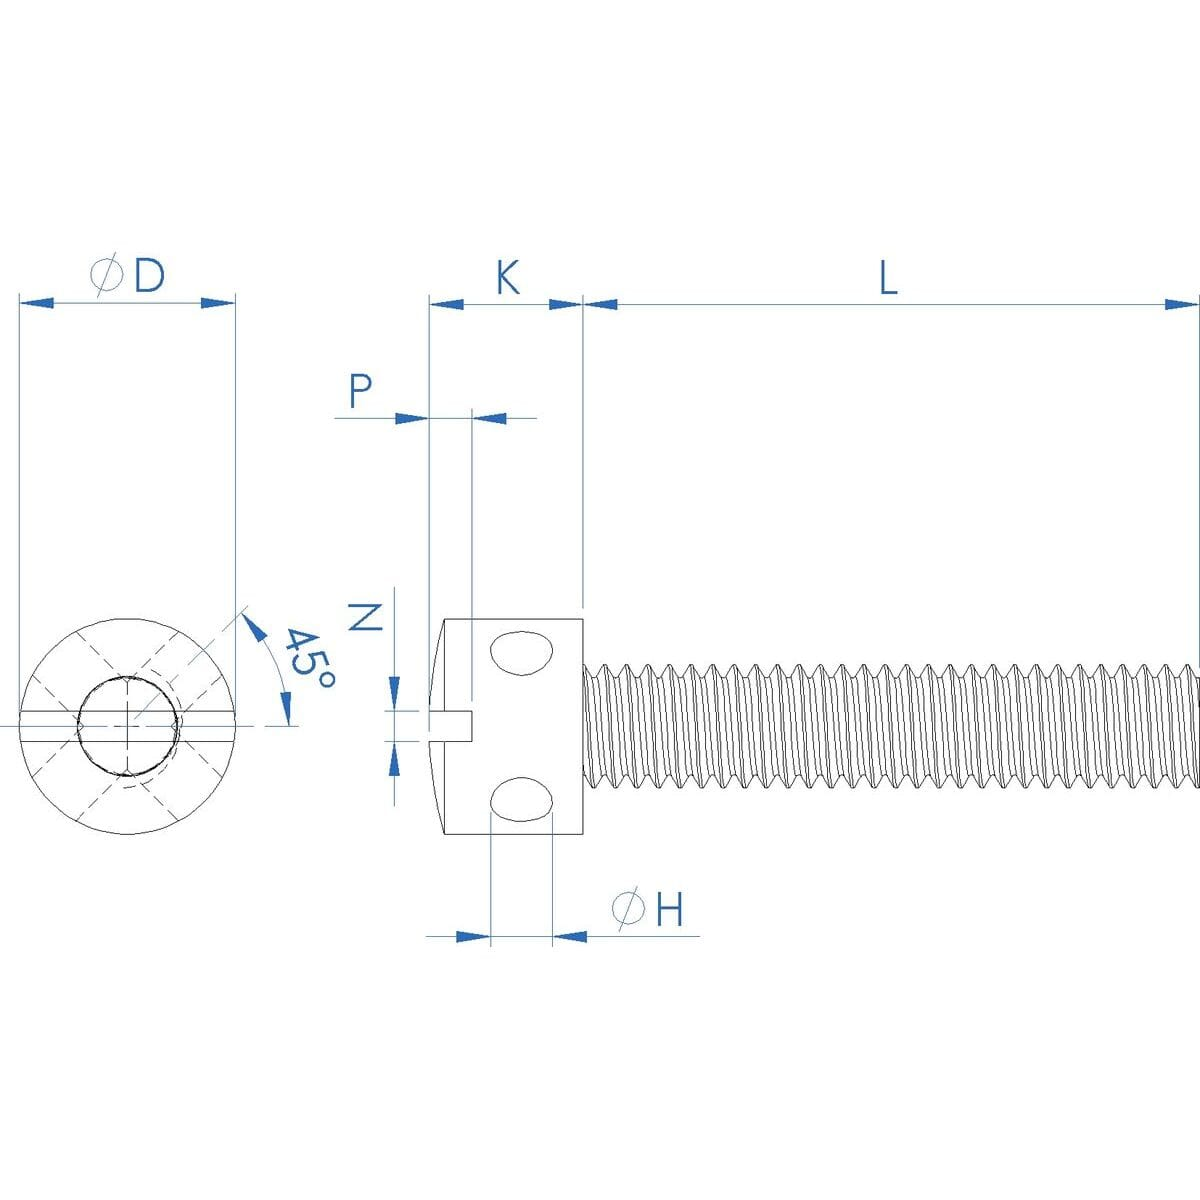 M4 x 8mm Capstan Screws (DIN 404) - A1 Stainless Steel Drawing